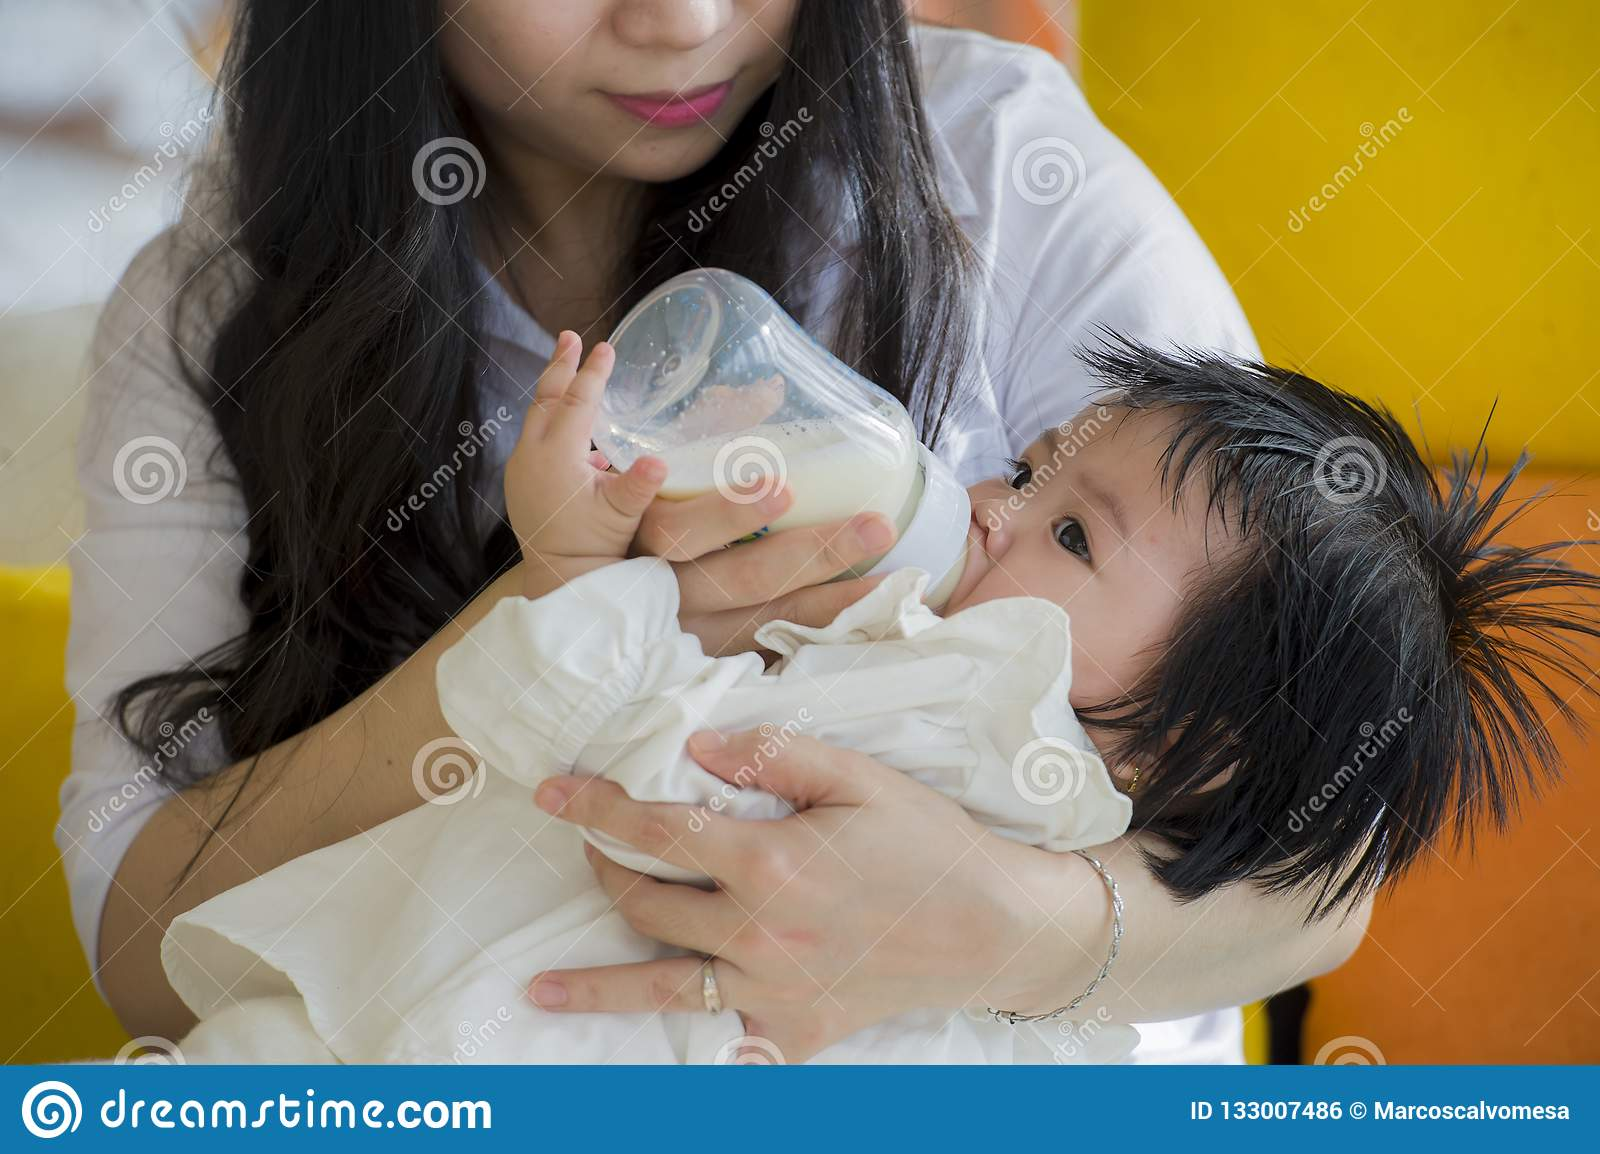 Lifestyle candid portrait of young happy and sweet Asian Japanese woman feeding her beautiful baby girl with formula bottle at